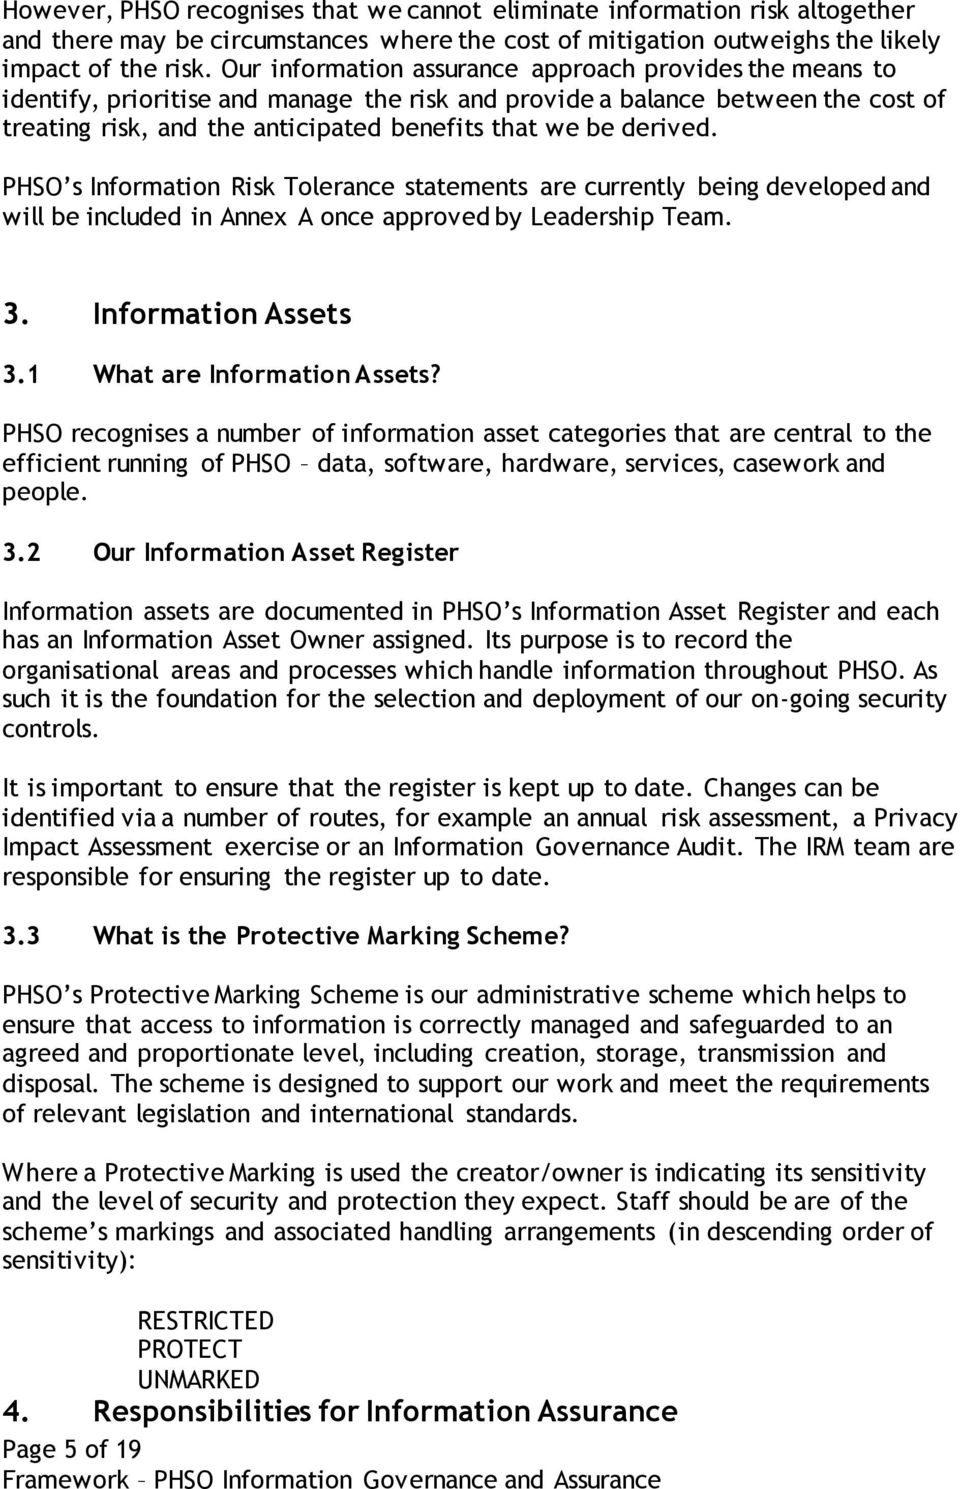 derived. PHSO s Information Risk Tolerance statements are currently being developed and will be included in Annex A once approved by Leadership Team. 3. Information Assets 3.